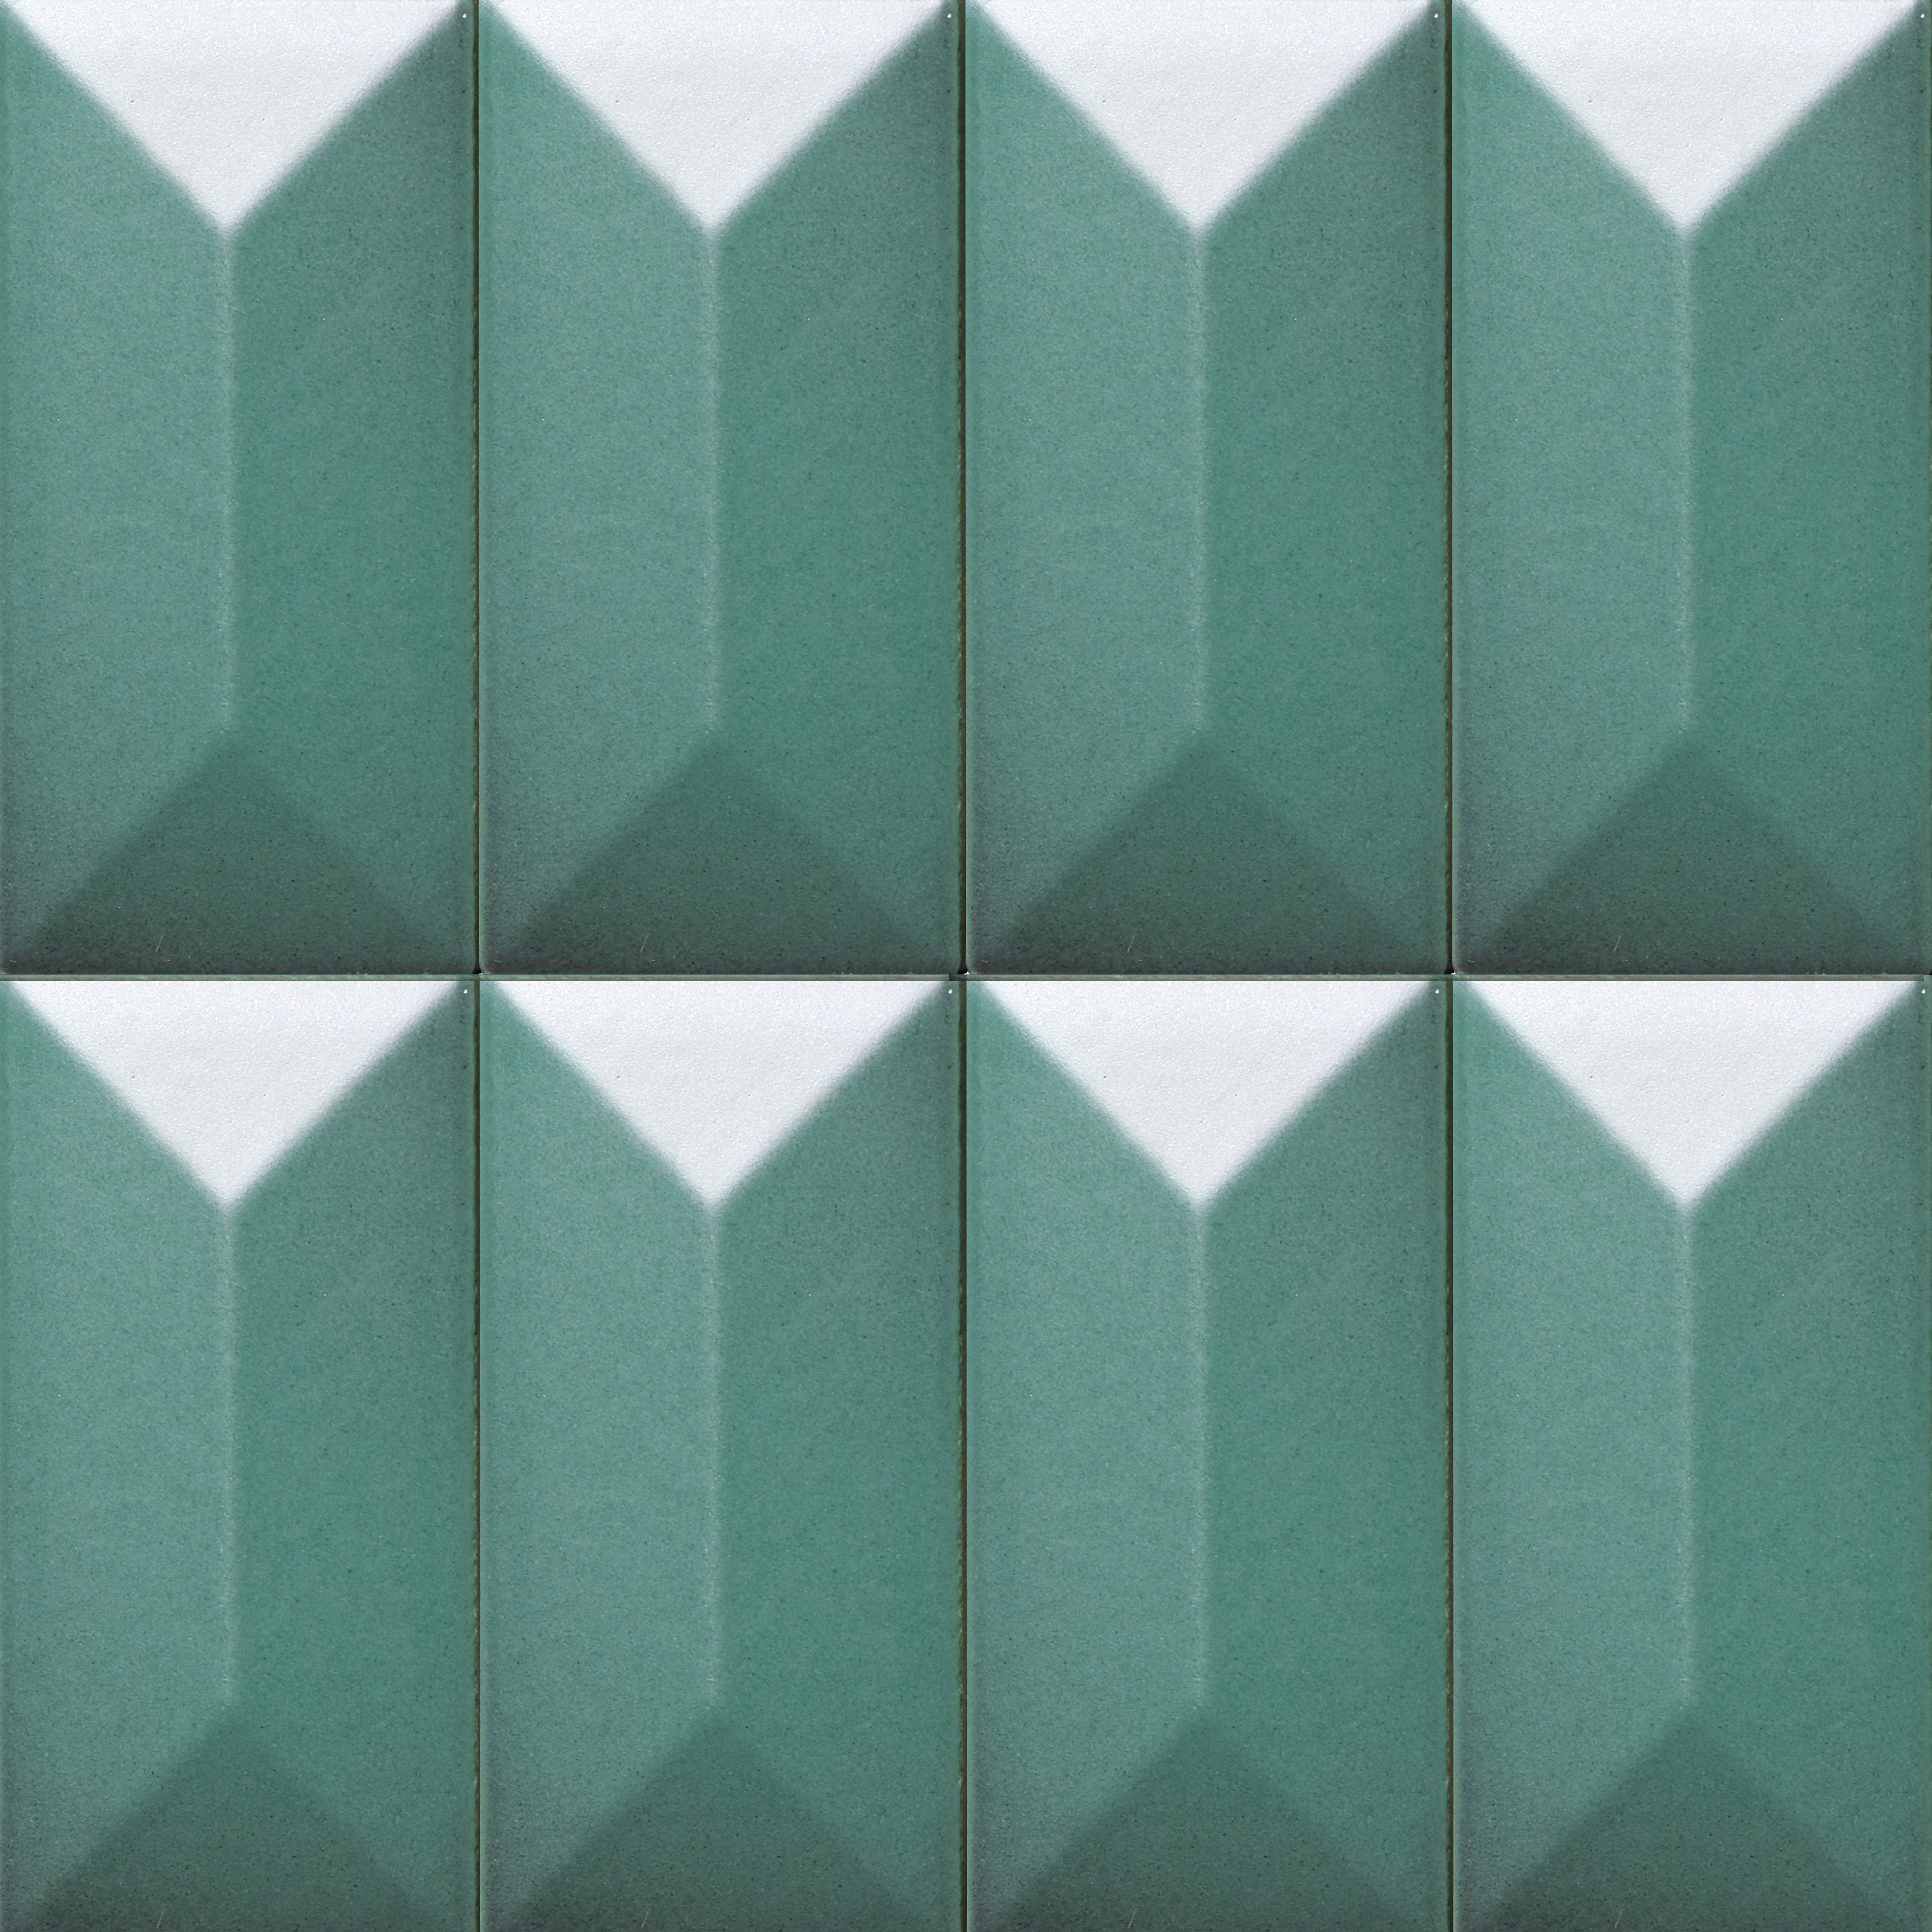 Polygonal 3D Tile - Matter of Stuff Polygonal 3D Tiles are characterized by a Prismatic geometry and are sized cm 10x5 cm. These ceramic tiles are perfect to decorate exterior facades and interior feature walls. Their design adds a geometric sense of movement and creates a 3D surface that plays with shadow and light. add a geometric sense of movement and they create 3D surfaces profiles that play with shadow and light. These tiles are produced in accordance with a hand-crafted technique which makes the material heterogeneous, both in the effects on the surface and in the dimension of the pieces. Bespoke glazing colours and effect are available. | Matter of Stuff